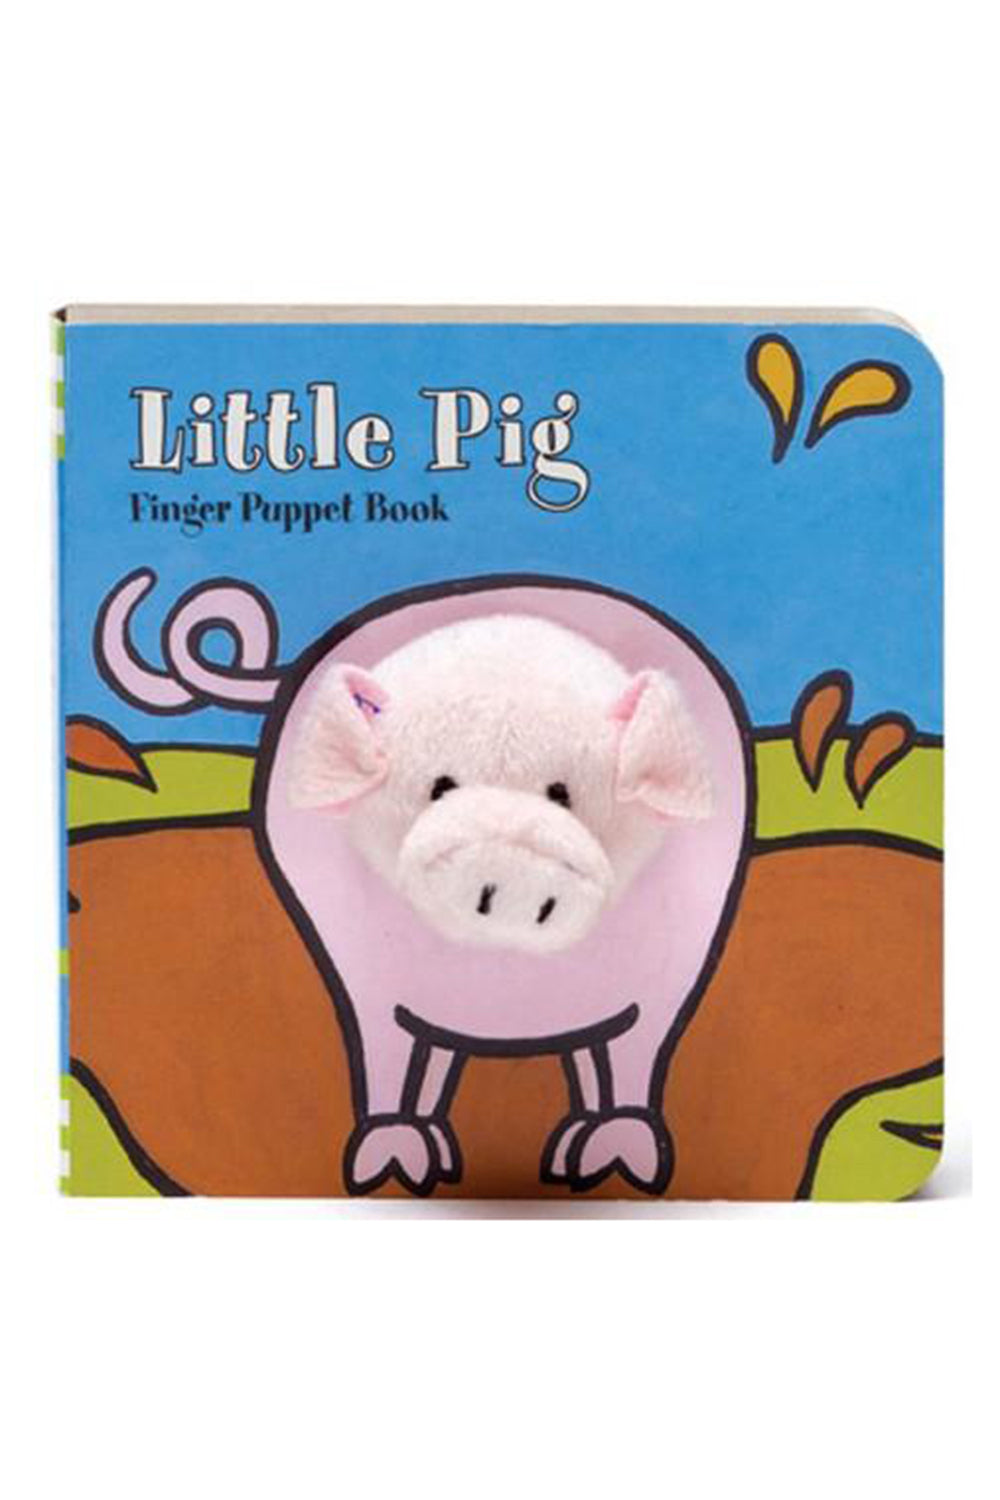 Finger Puppet Book - Little Pig